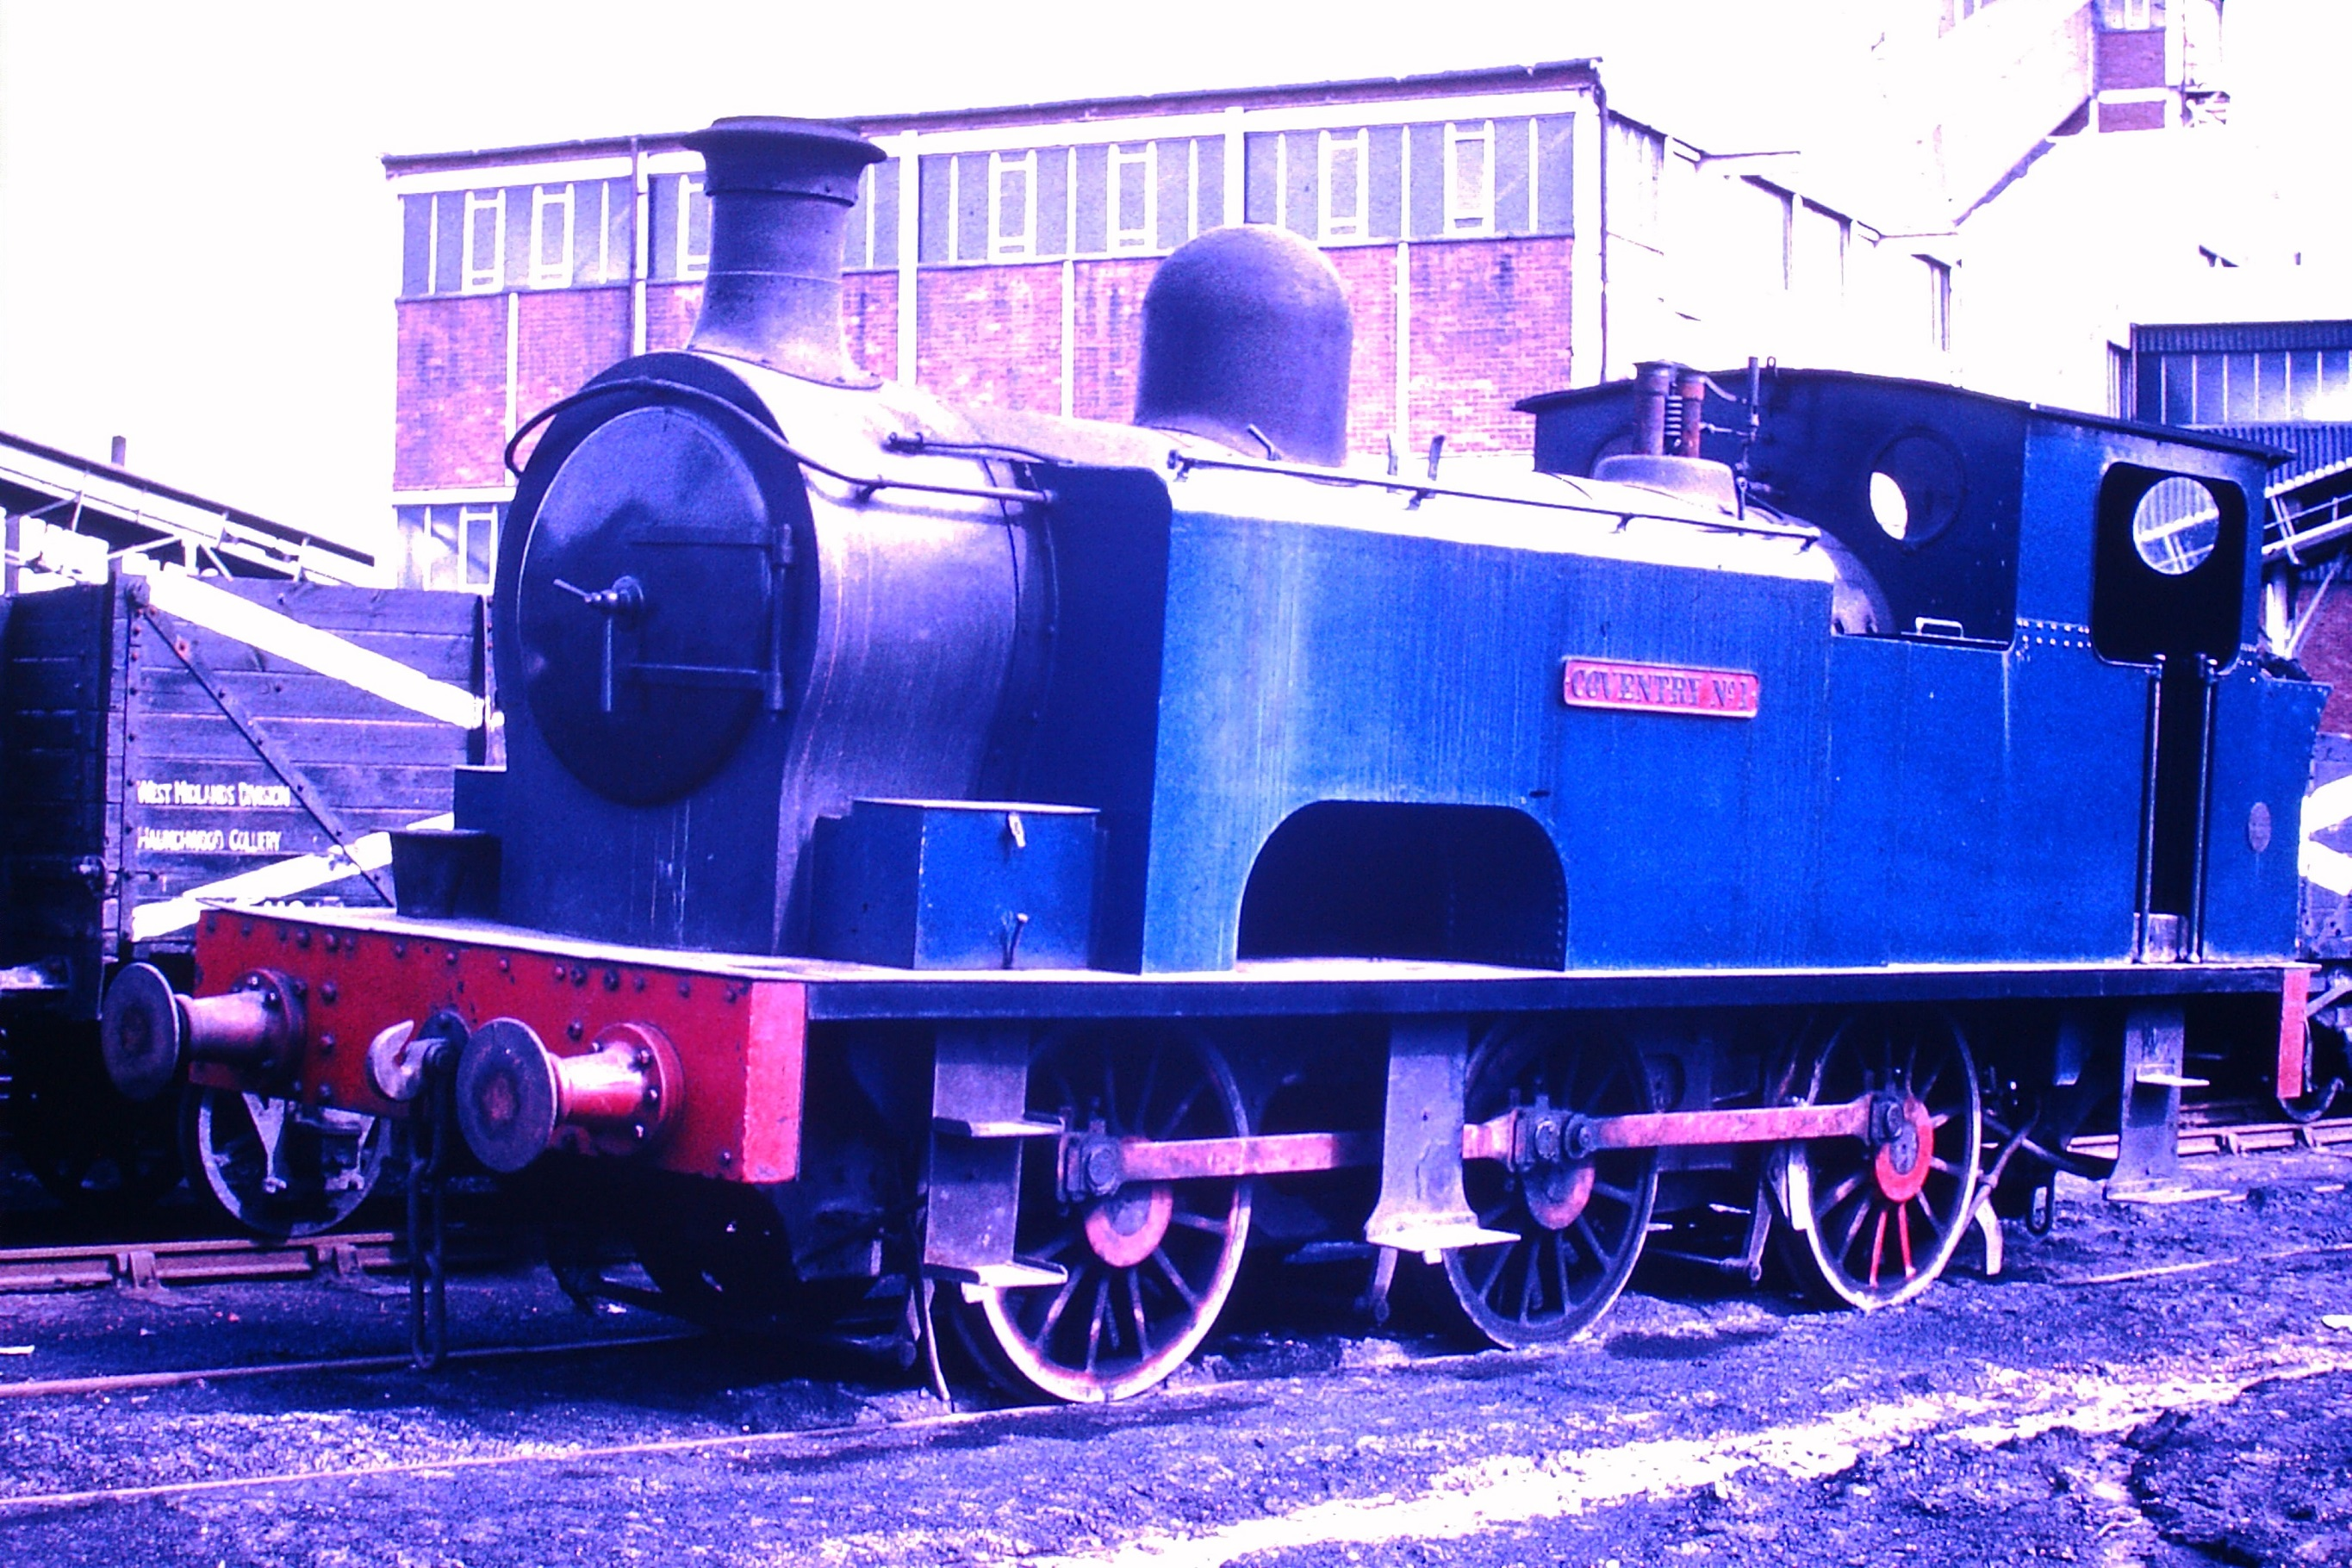 Coventry No. 1 seen at work at Haunchwood Colliery - date uncertain